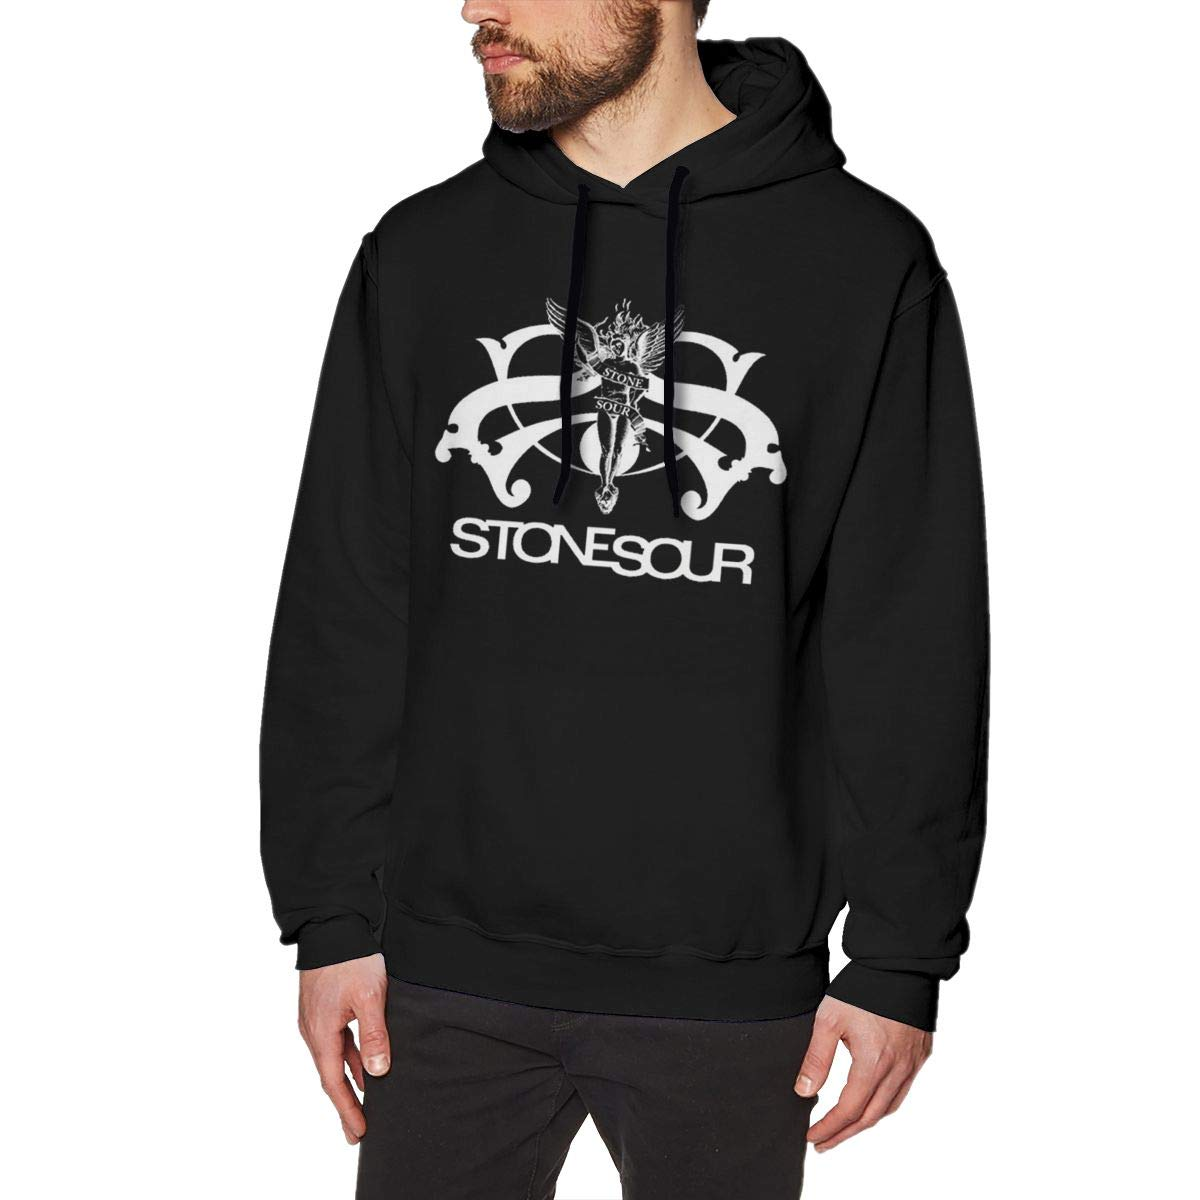 Cumque Stone Sour Classic Sweater Pullove Grafi Hoody Casual Hooded Tops Black Shirts